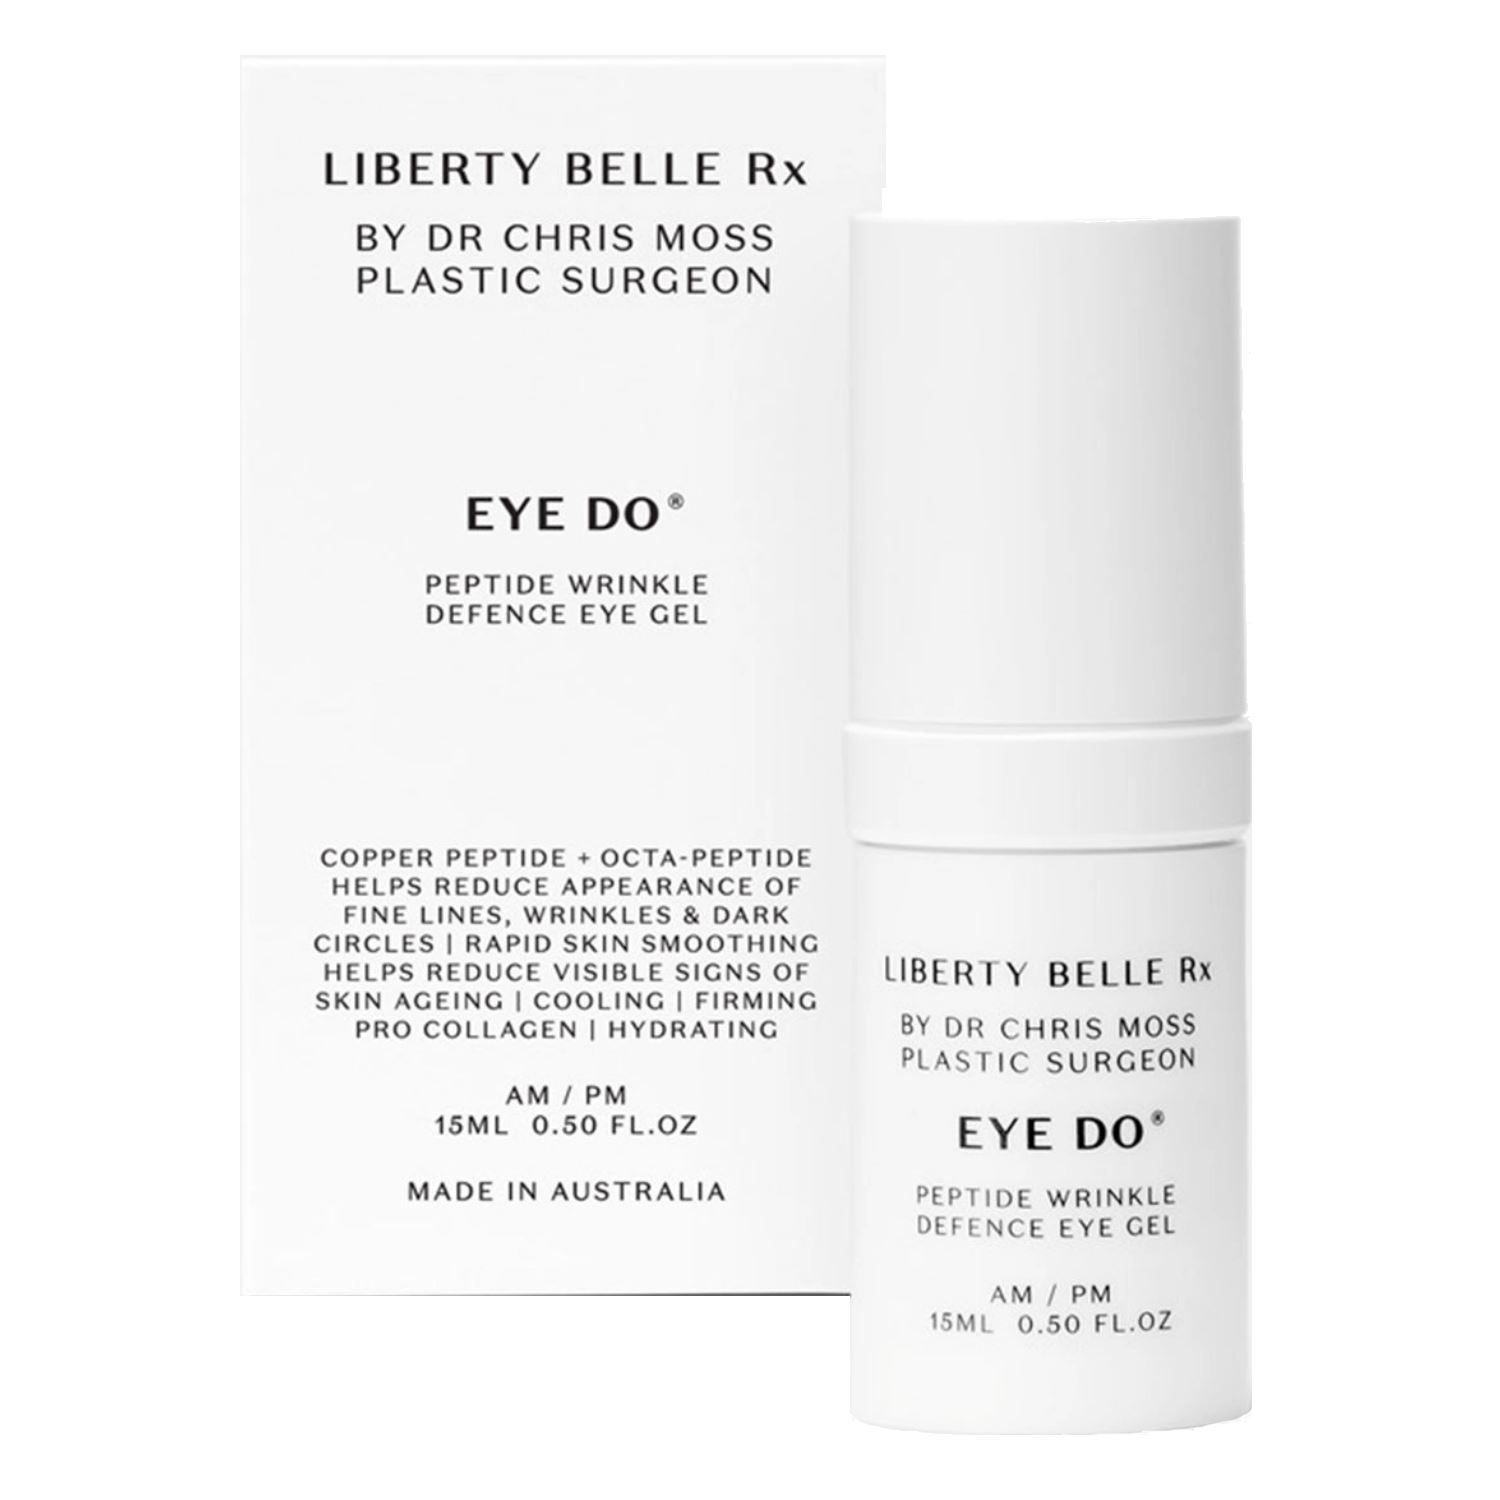 Eye Do Peptide Wrinkle Defence Eye Gel